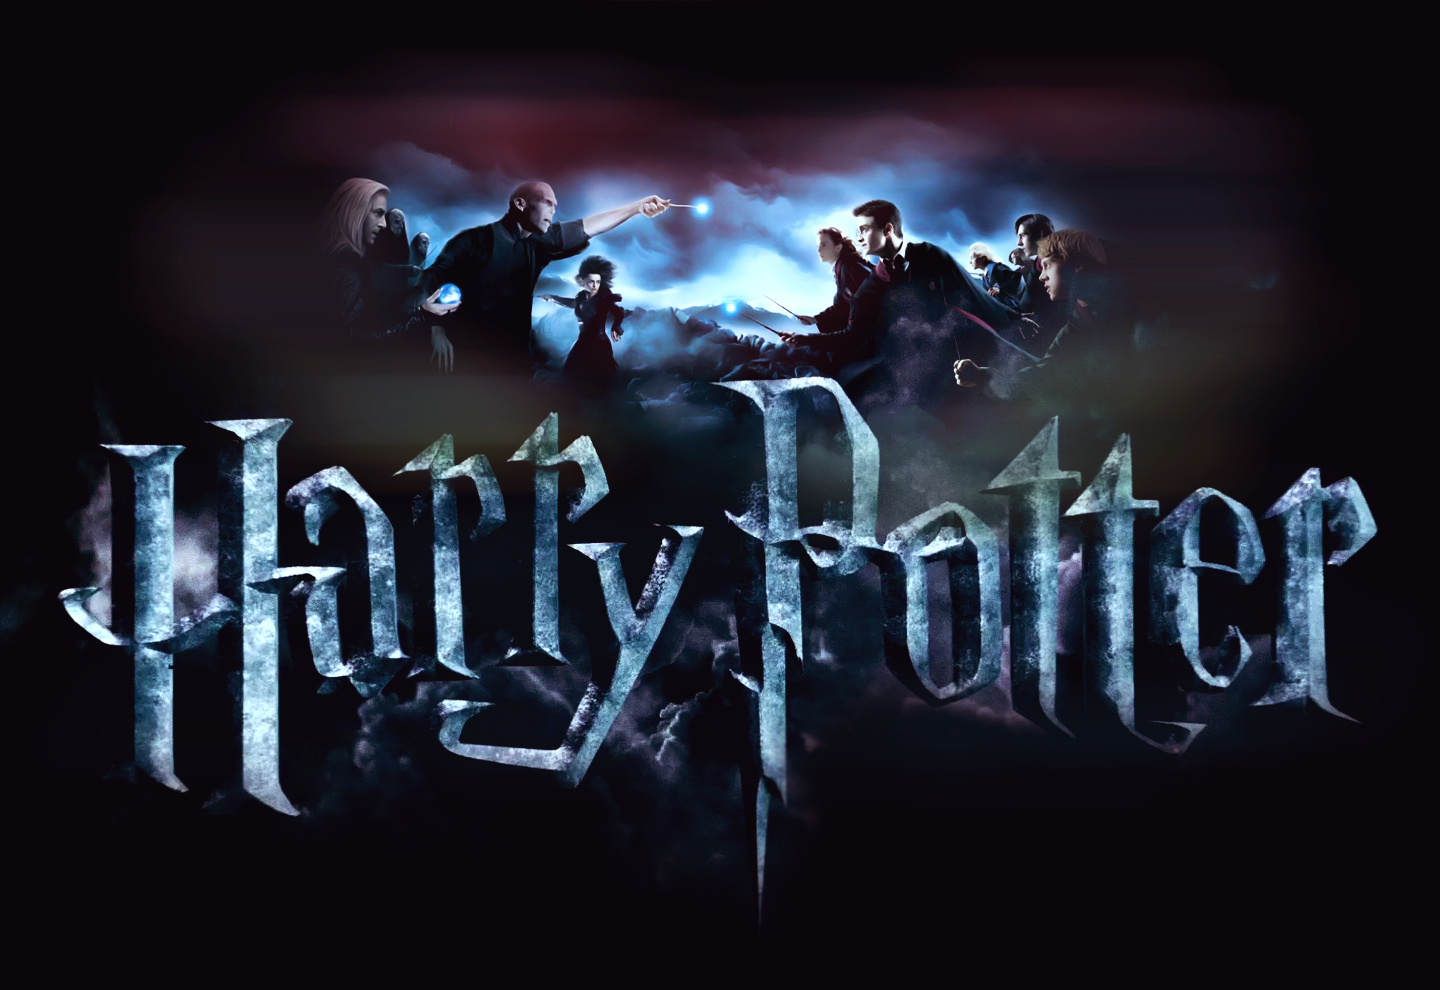 Best Wallpaper Harry Potter Windows 7 - 3D-Harry-Potter-Wallpapers-HD-amazing-colourful-background-photos-download-best-windows-display-picture-1440x990  Pictures_77436.jpg